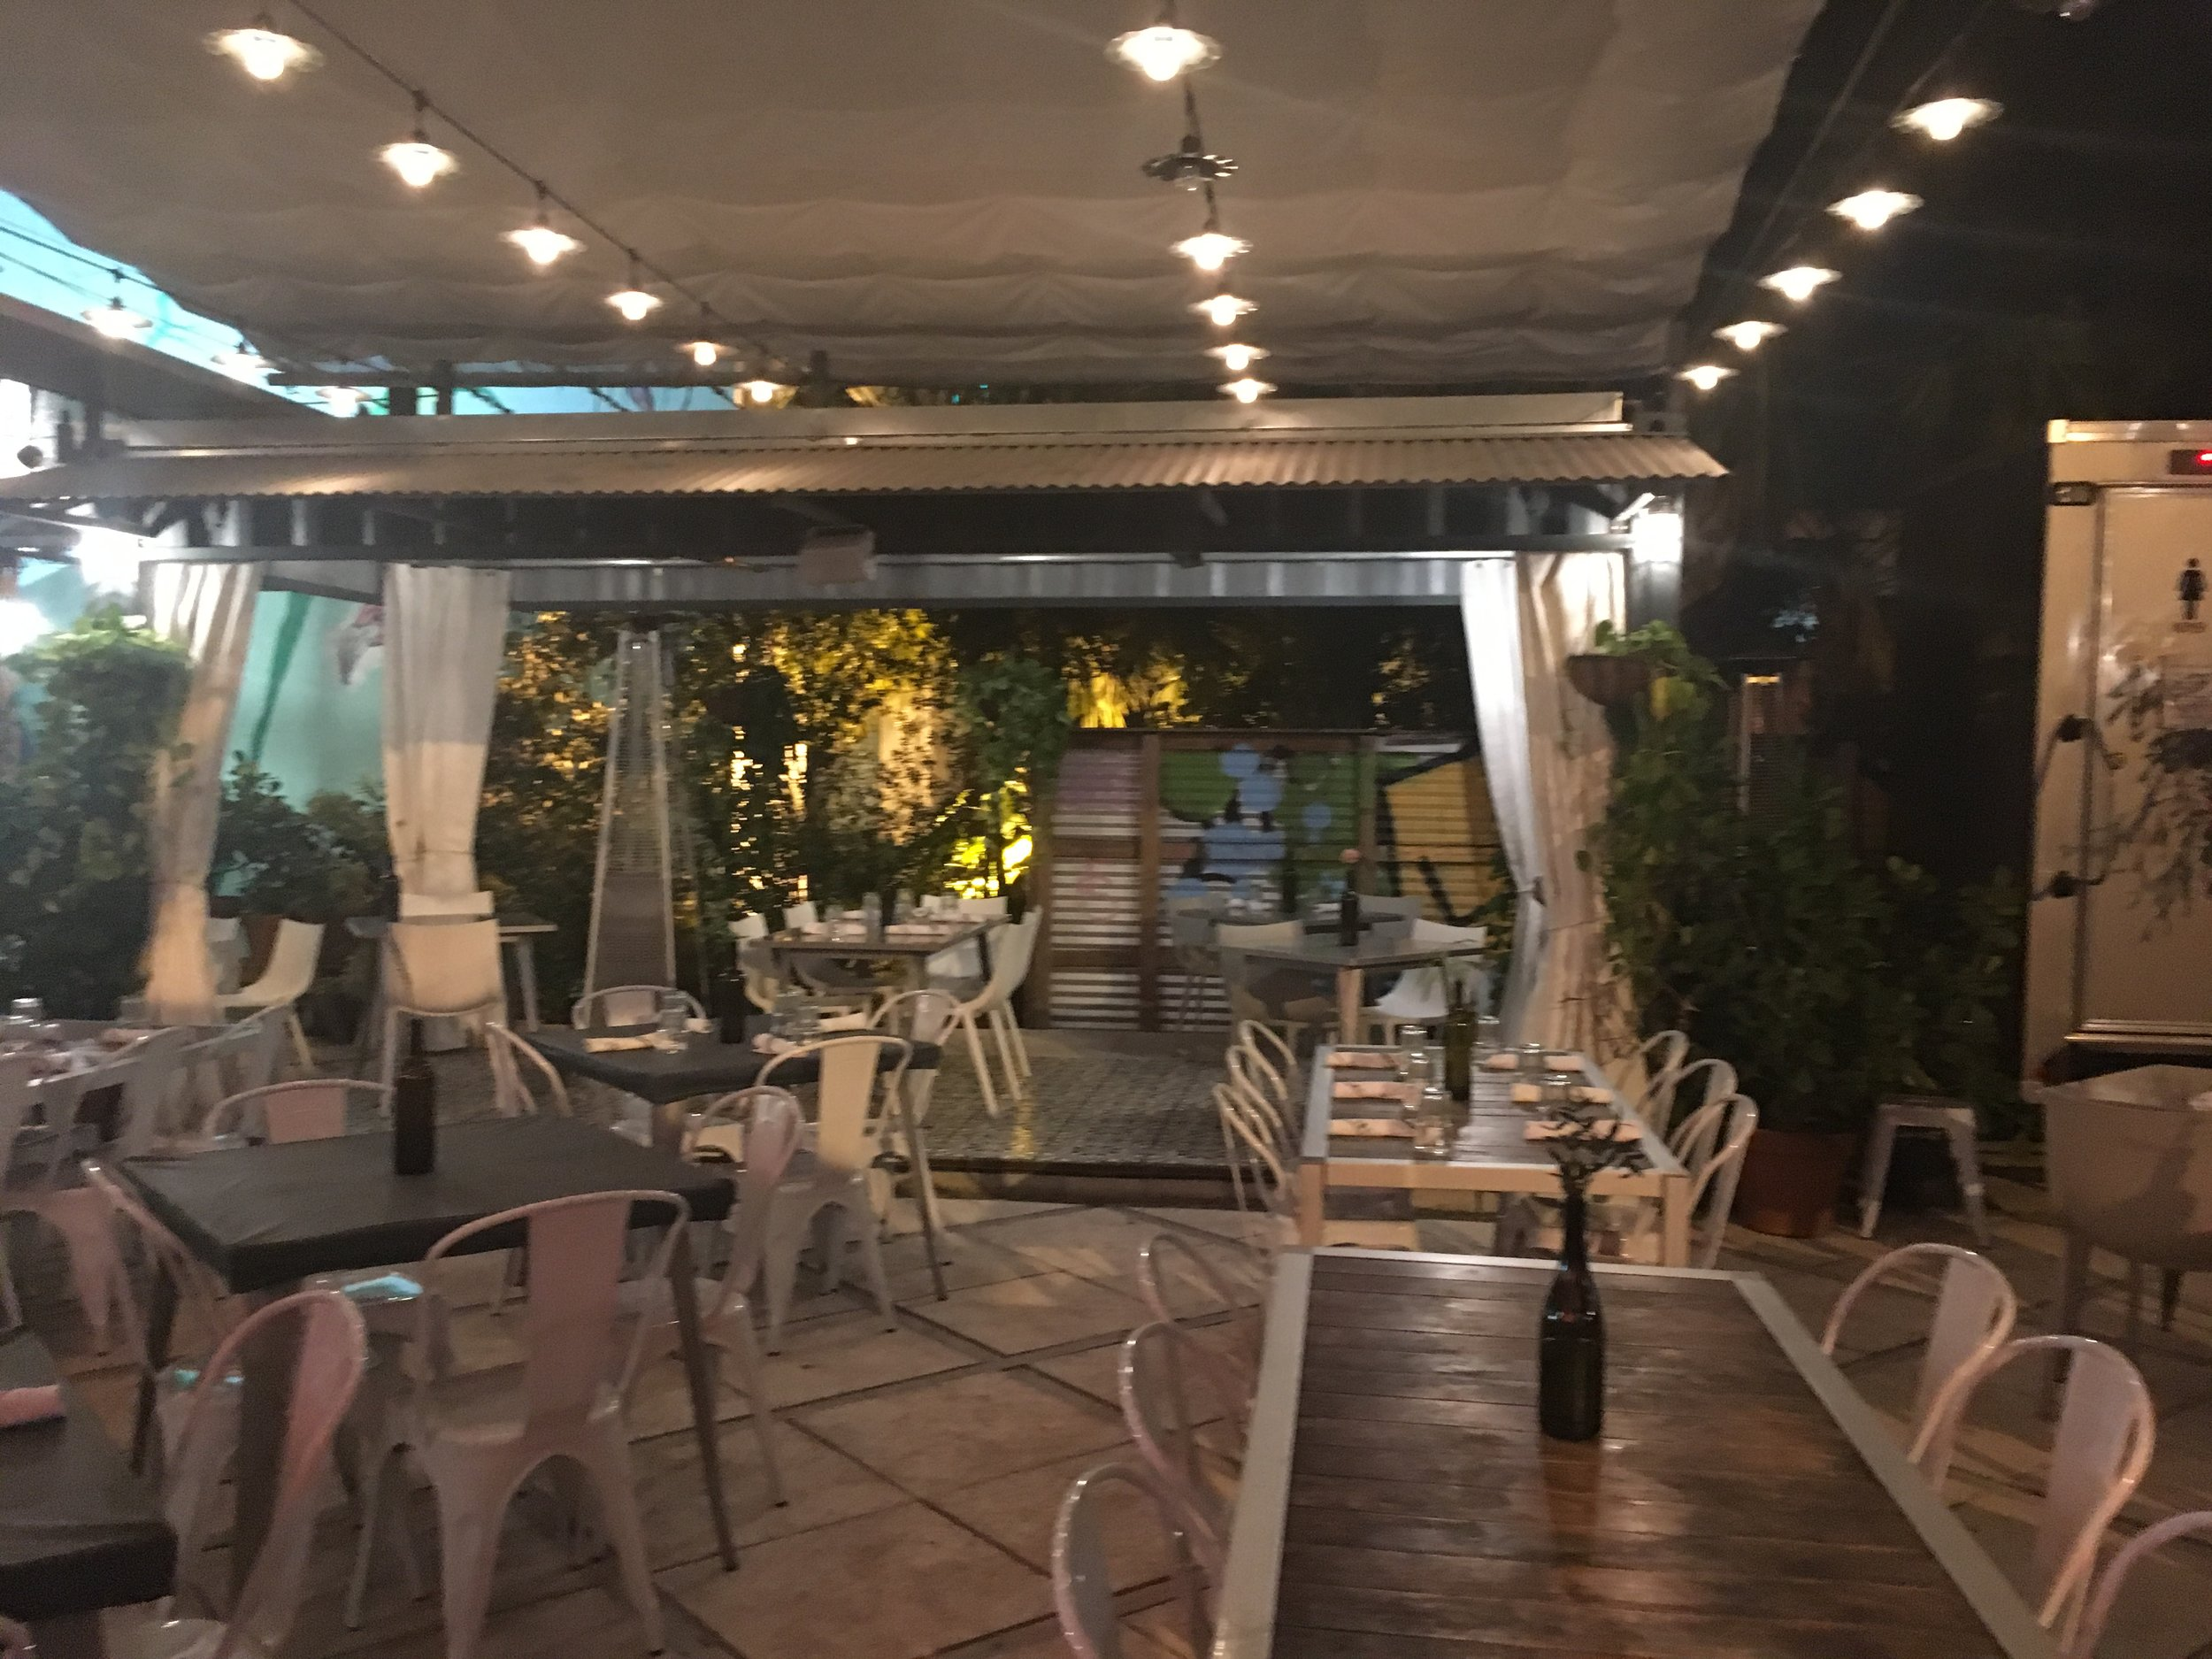 This beautiful open courtyard is a perfect space to dine in the warm Miami evenings.